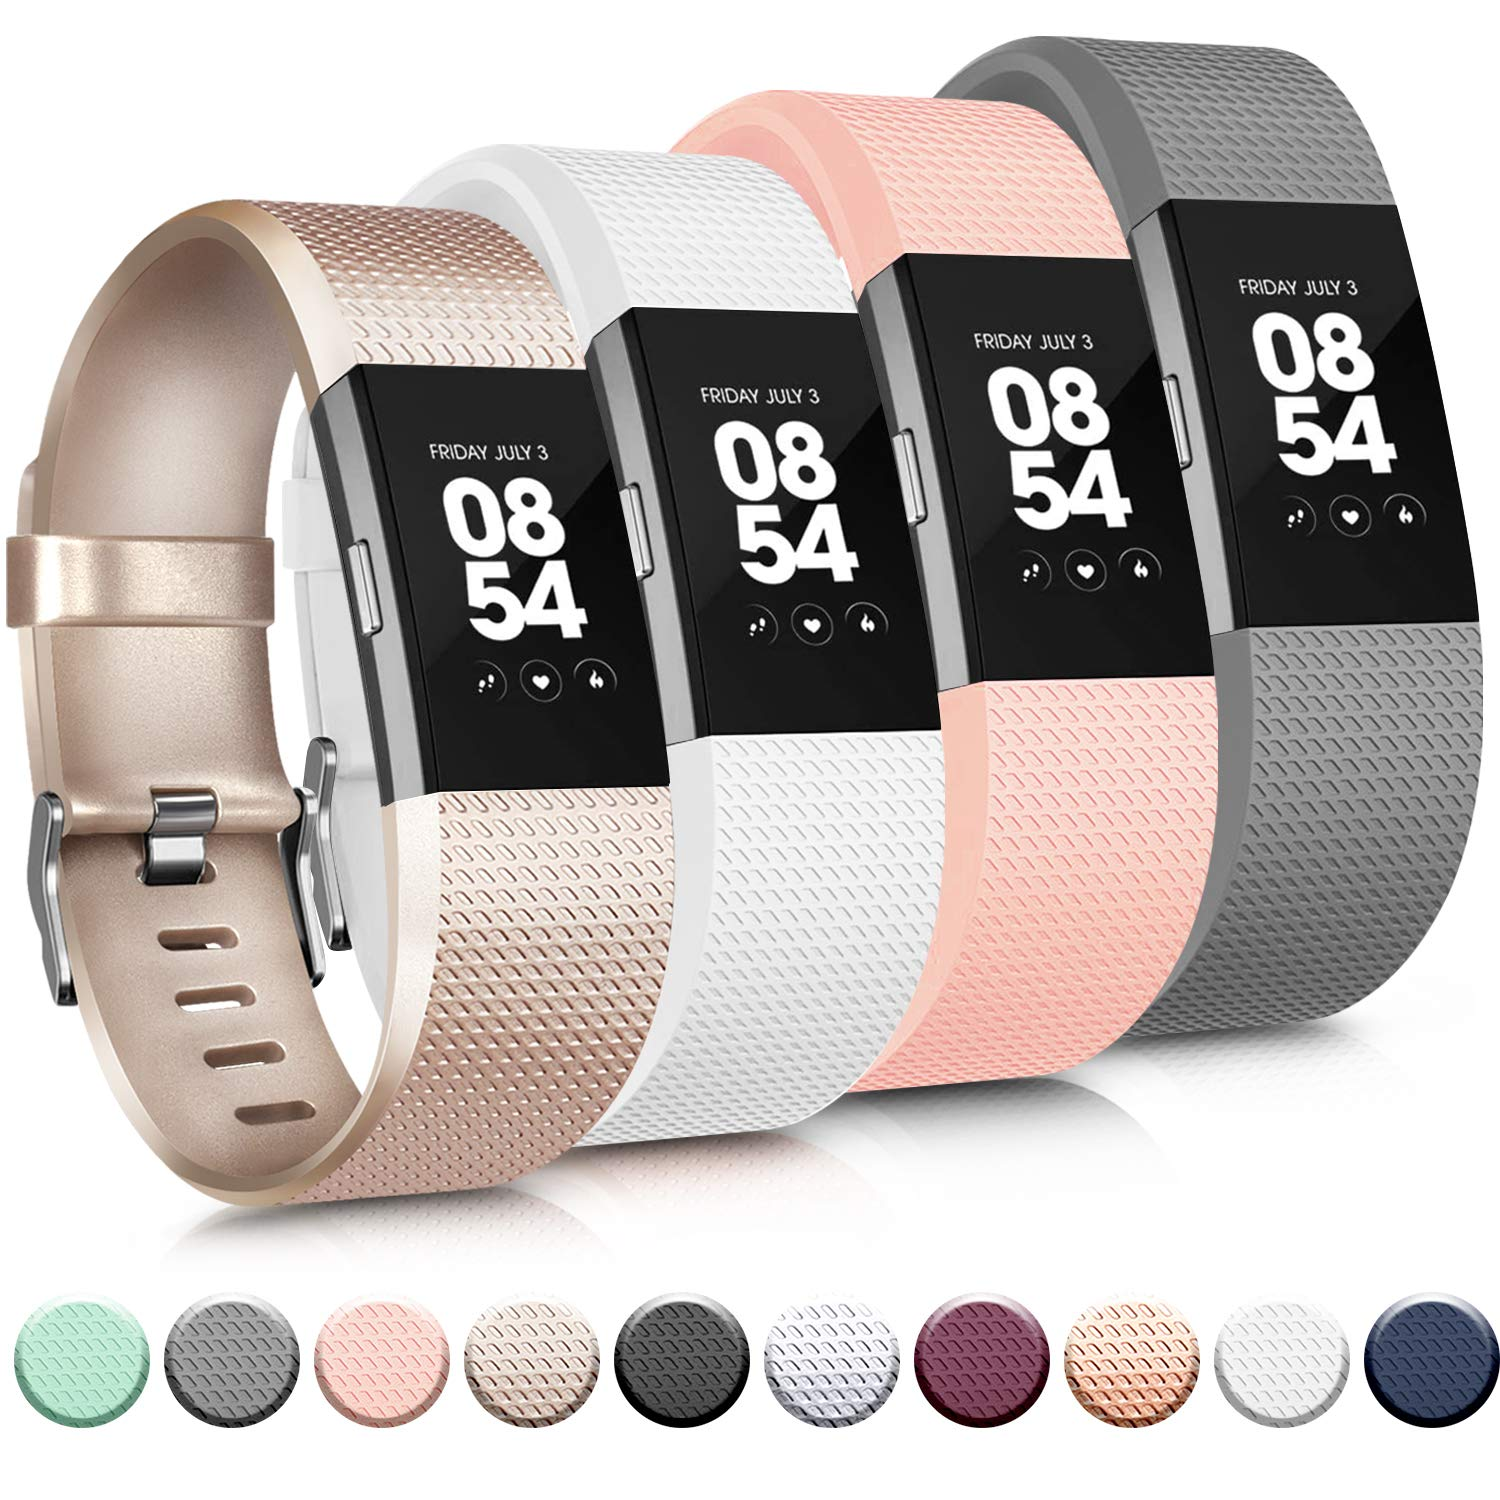 4 Mallas Small para Fitbit Charge 2 Champán / Gris / Rosa /